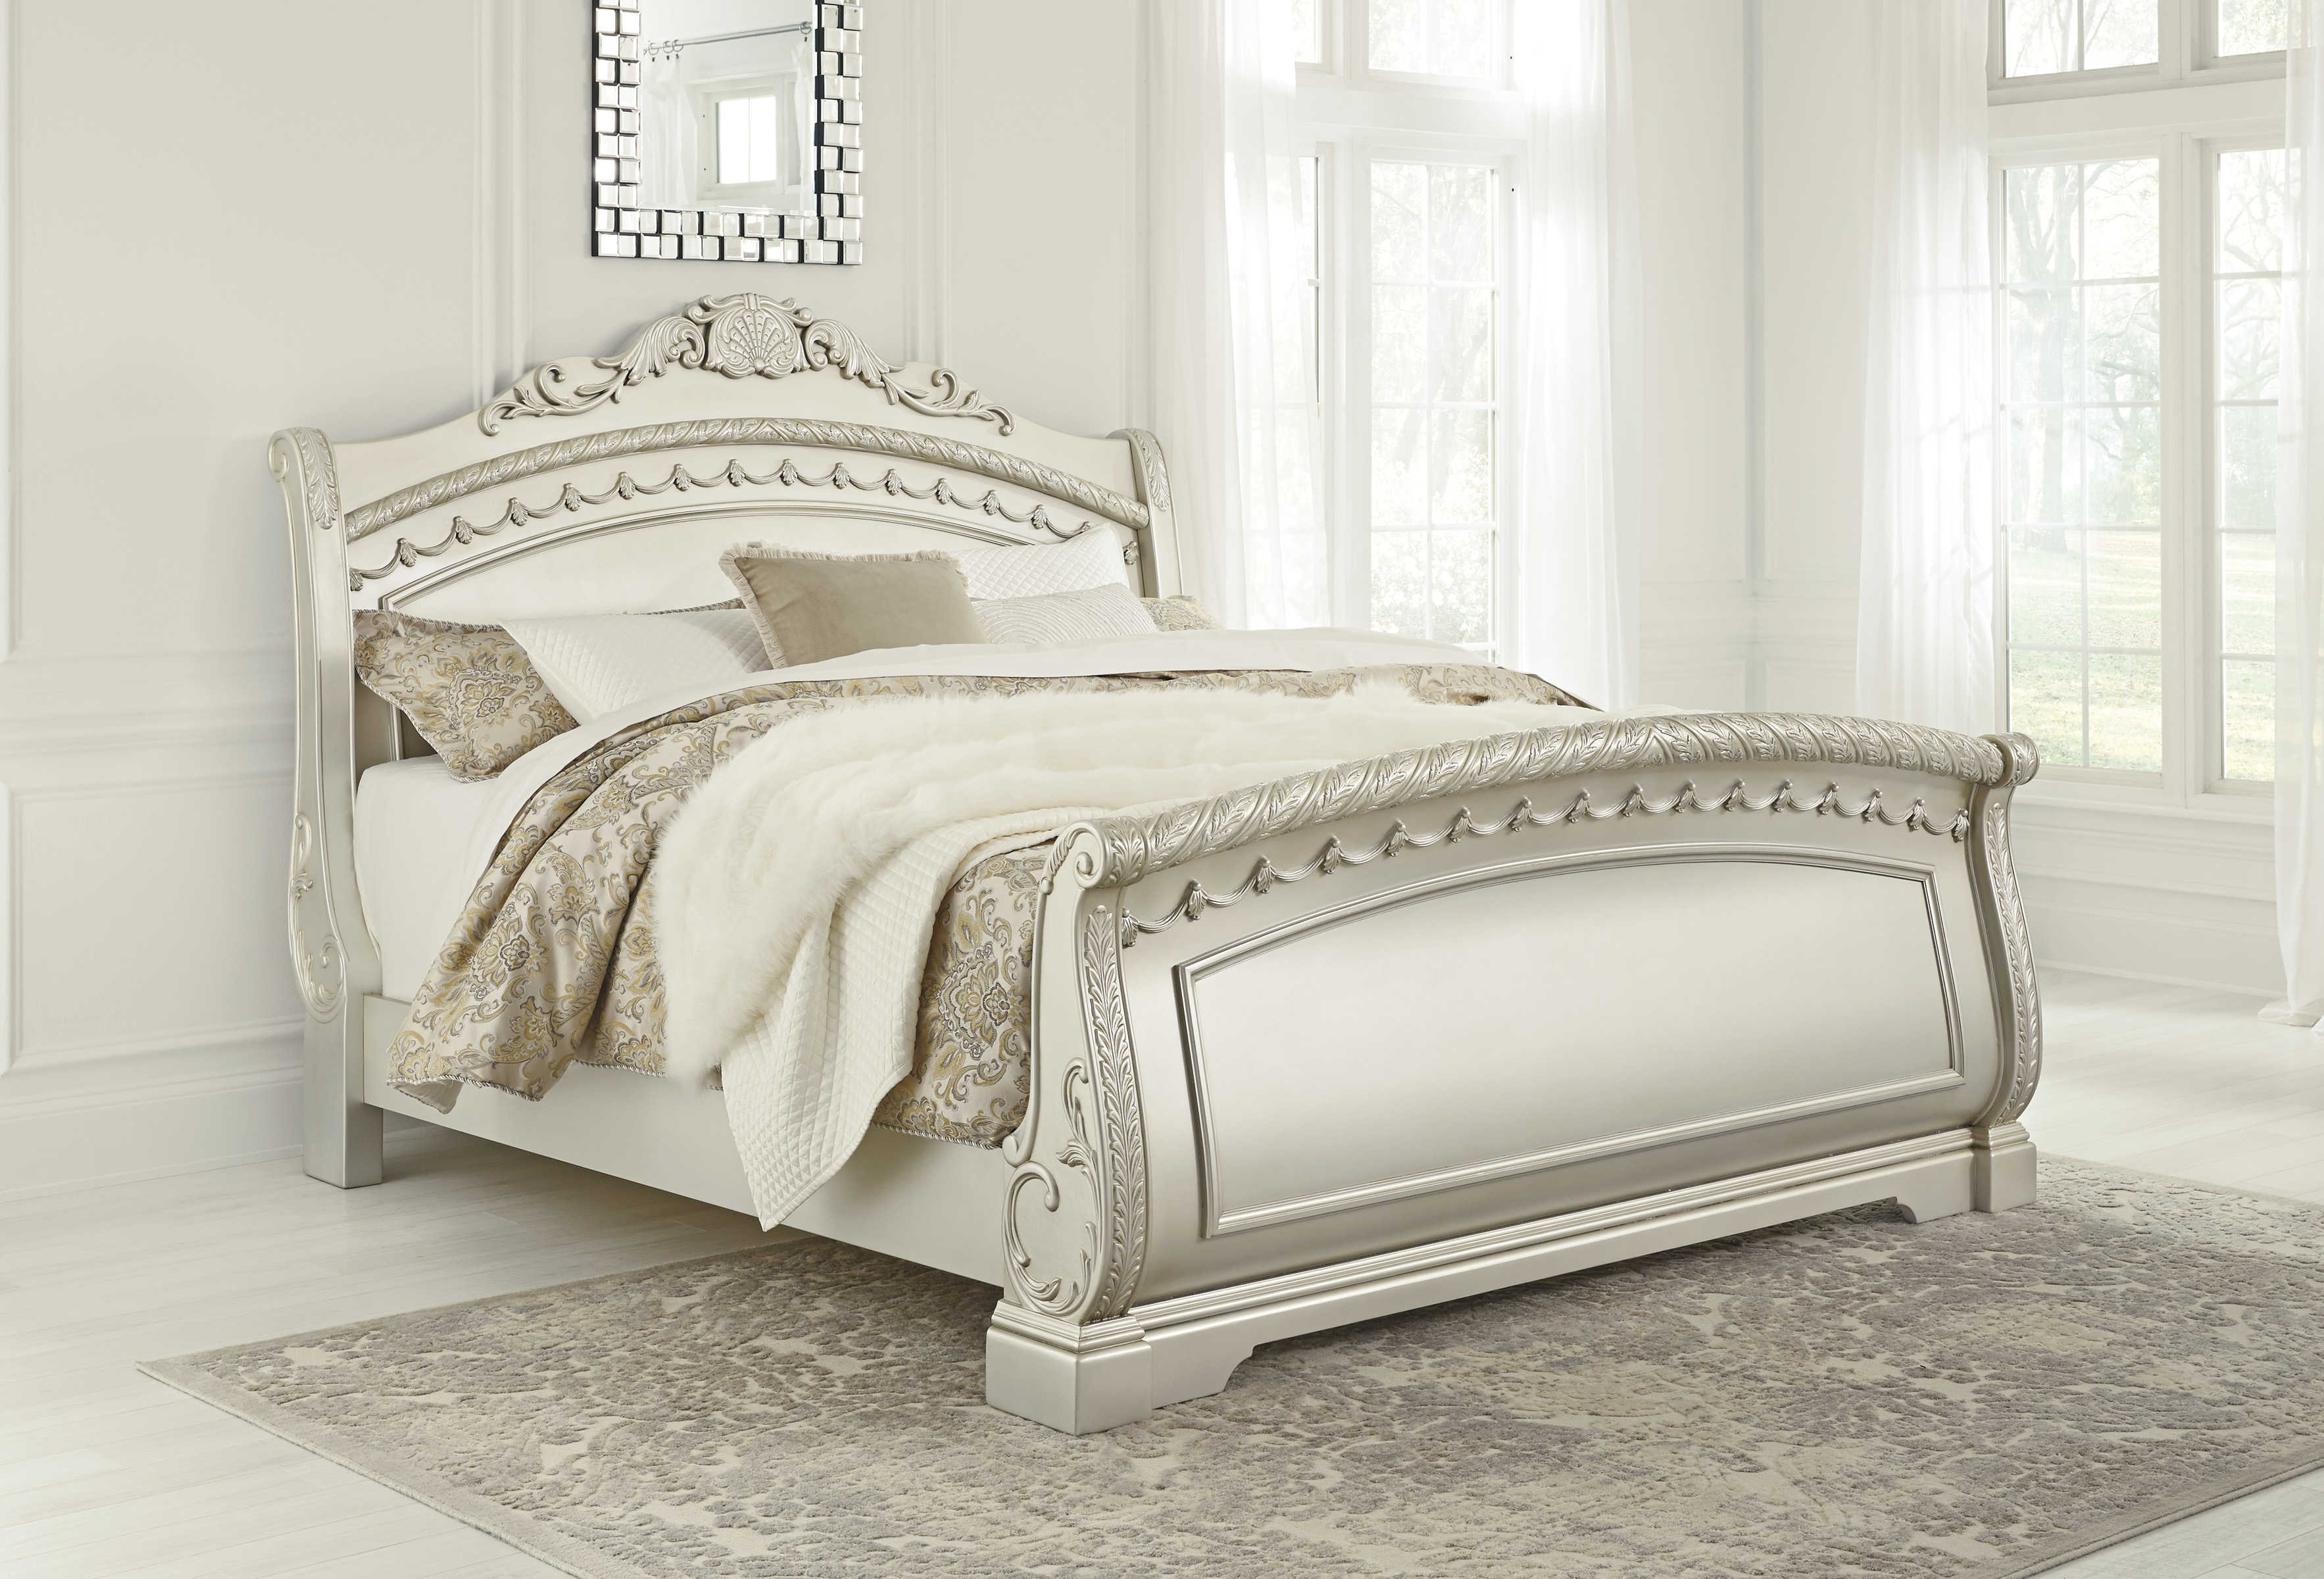 Ashley Furniture Cassimore Queen Sleigh Bed The Classy Home